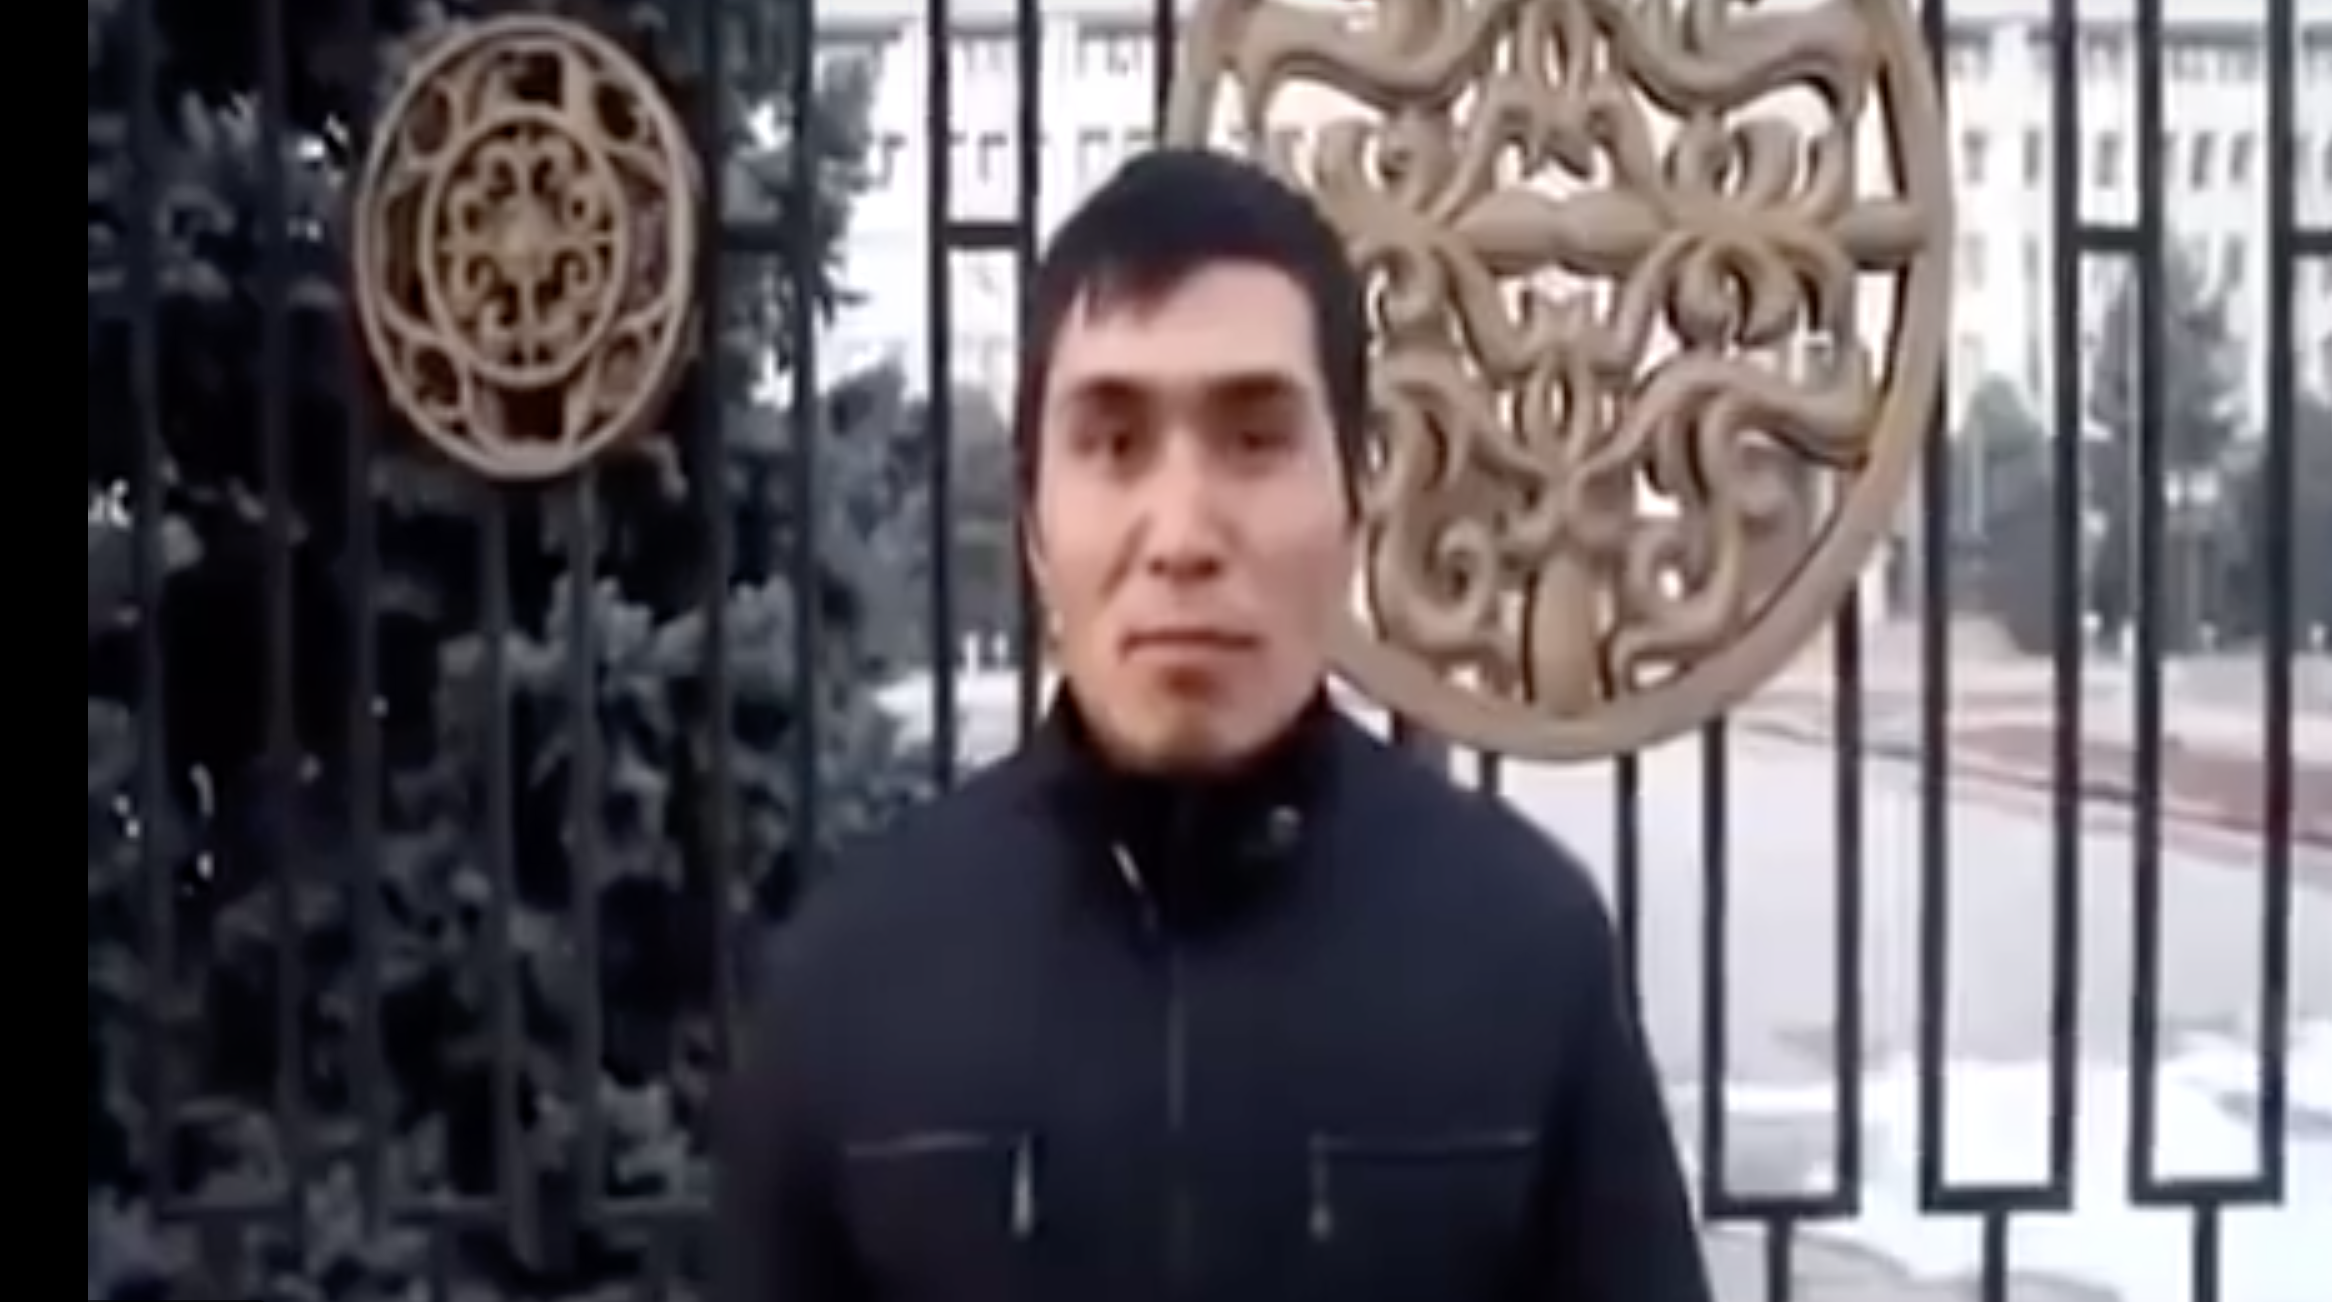 Zakiryayev hawking outside the gates of the White House before spitting. (Photo: YouTube)